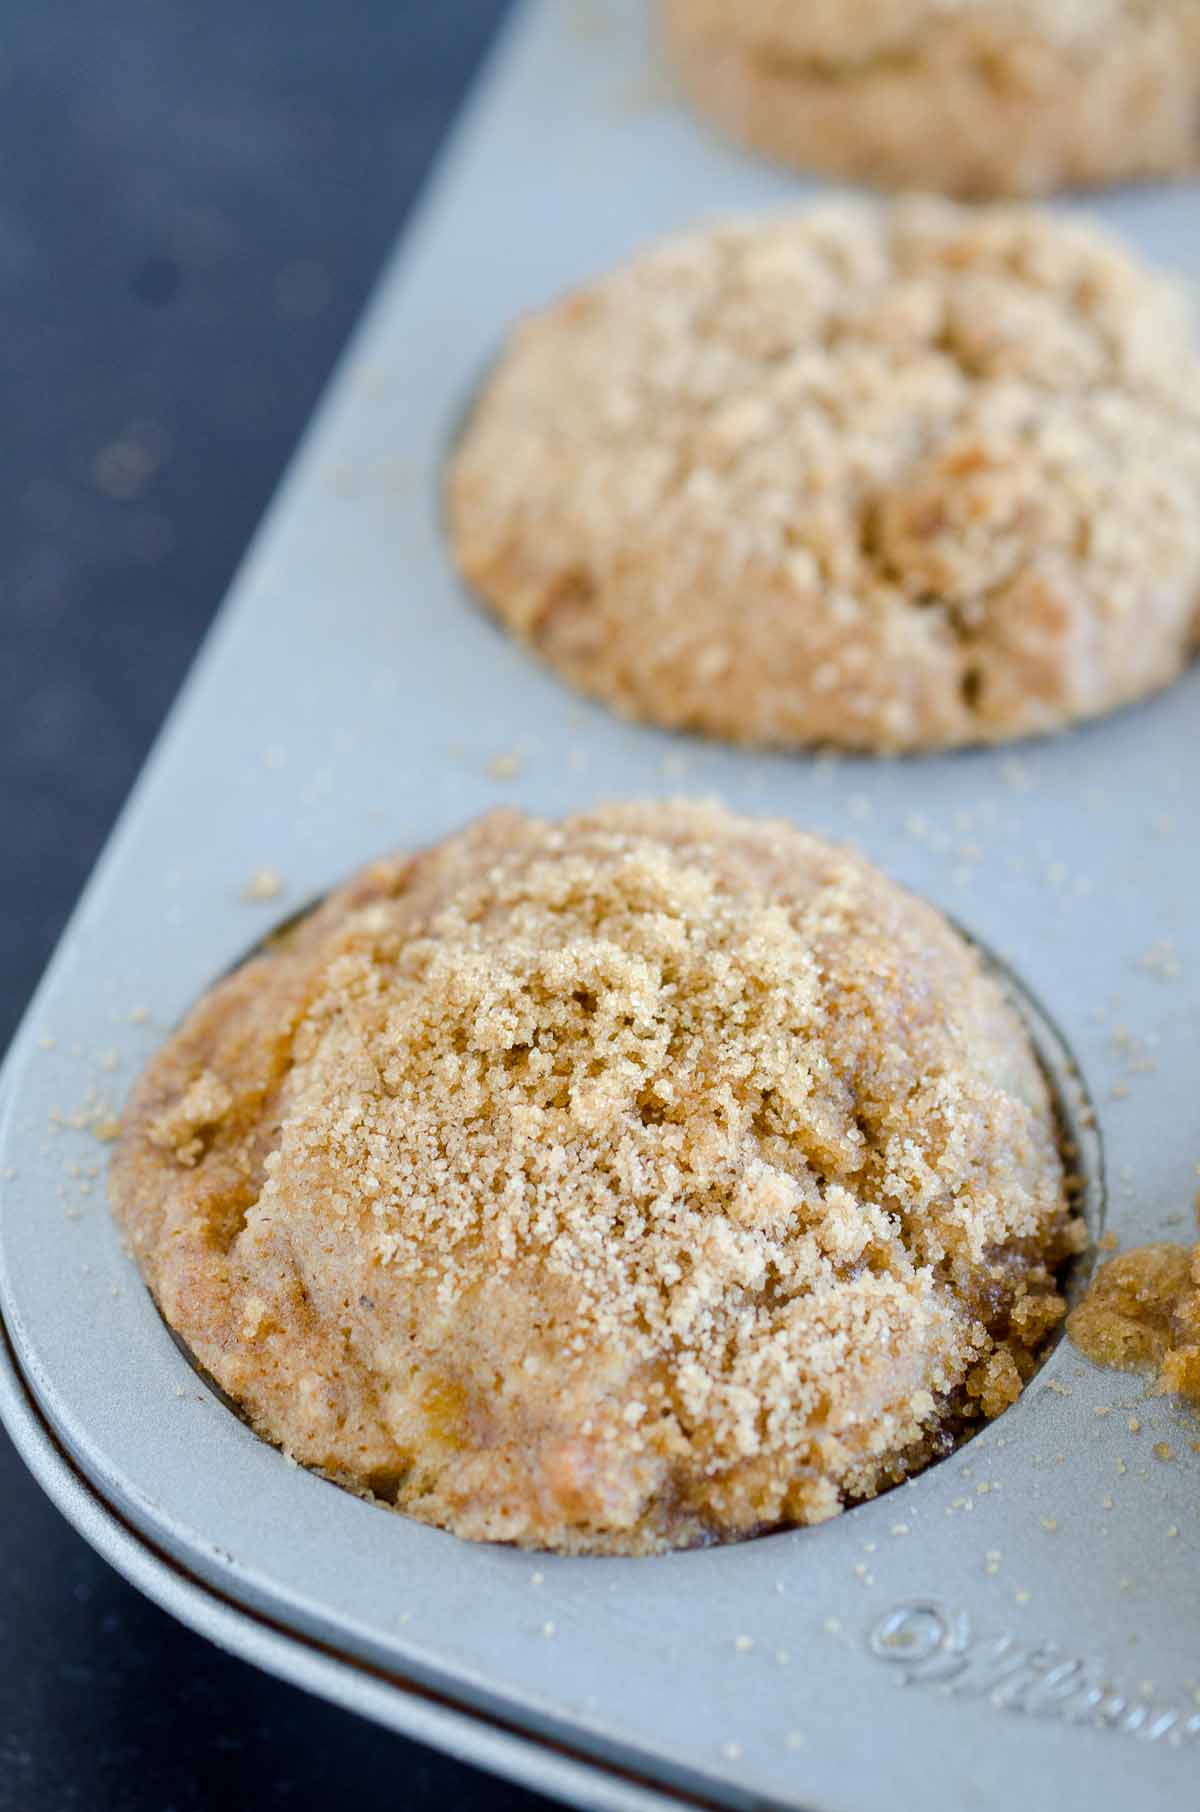 muffin with streusel topping in cucpake tin